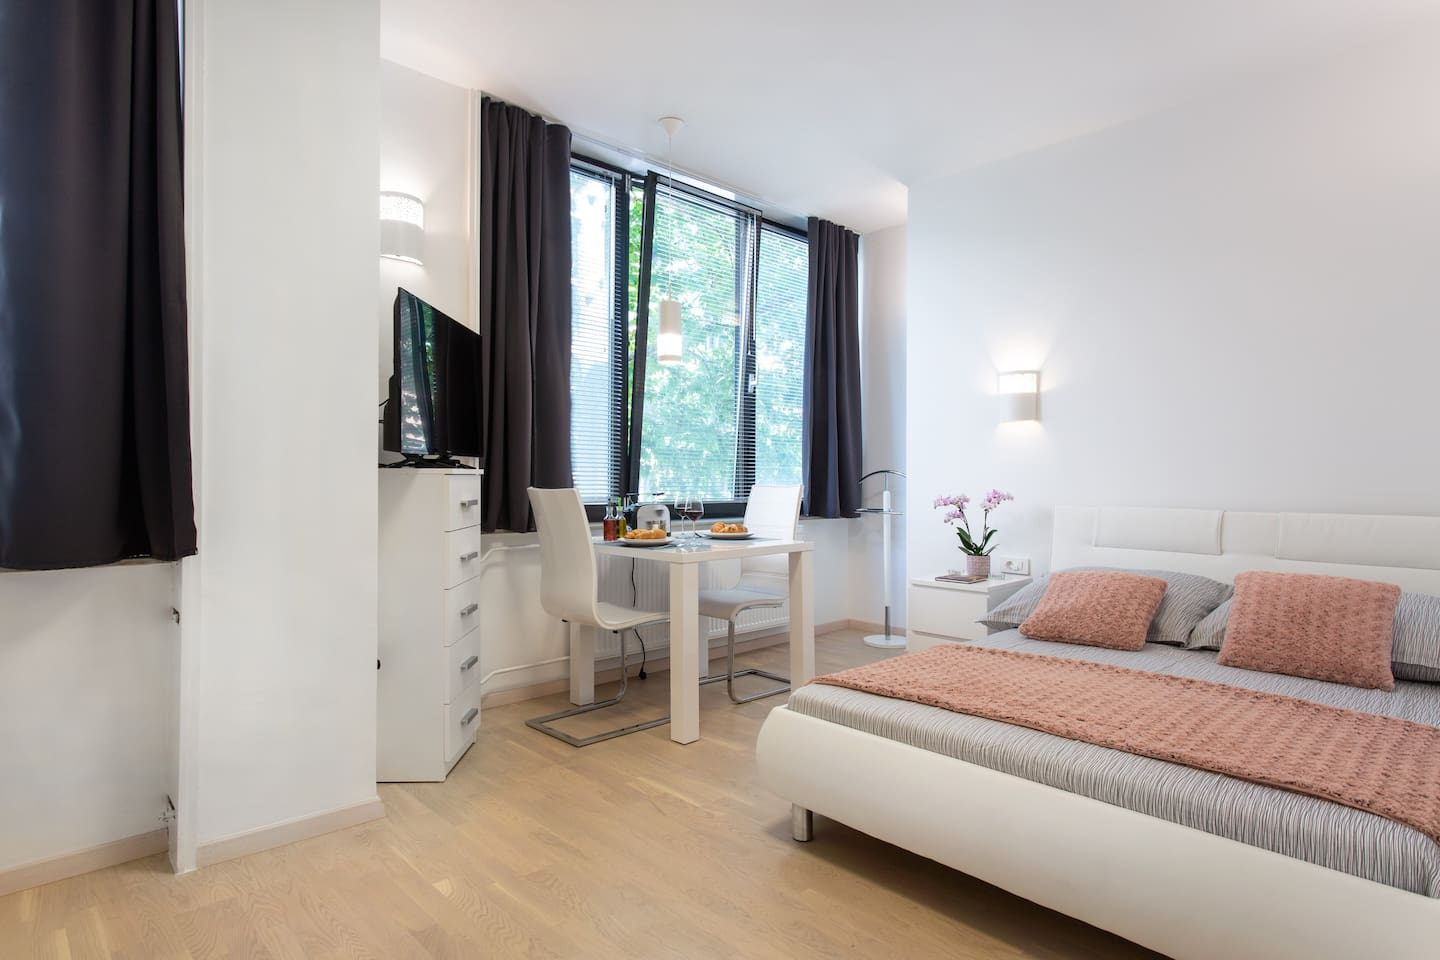 This well lightened loft is a space in which you can really enjoy and relax after a hard day's work or after discovering the wonders of Ljubljana&Slovenia.